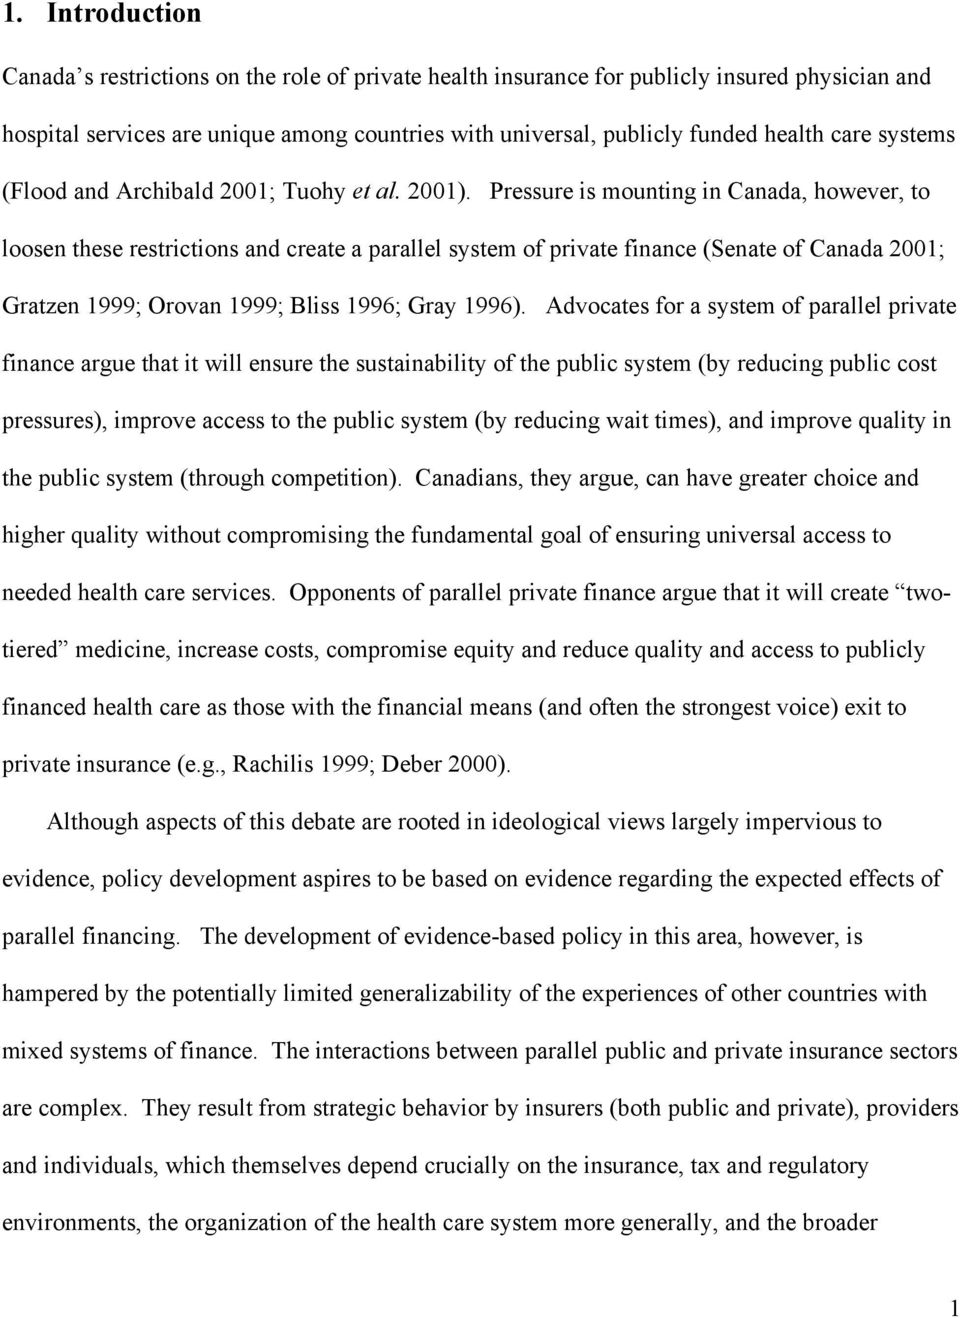 Pressure is mounting in Canada, however, to loosen these restrictions and create a parallel system of private finance (Senate of Canada 2001; Gratzen 1999; Orovan 1999; Bliss 1996; Gray 1996).